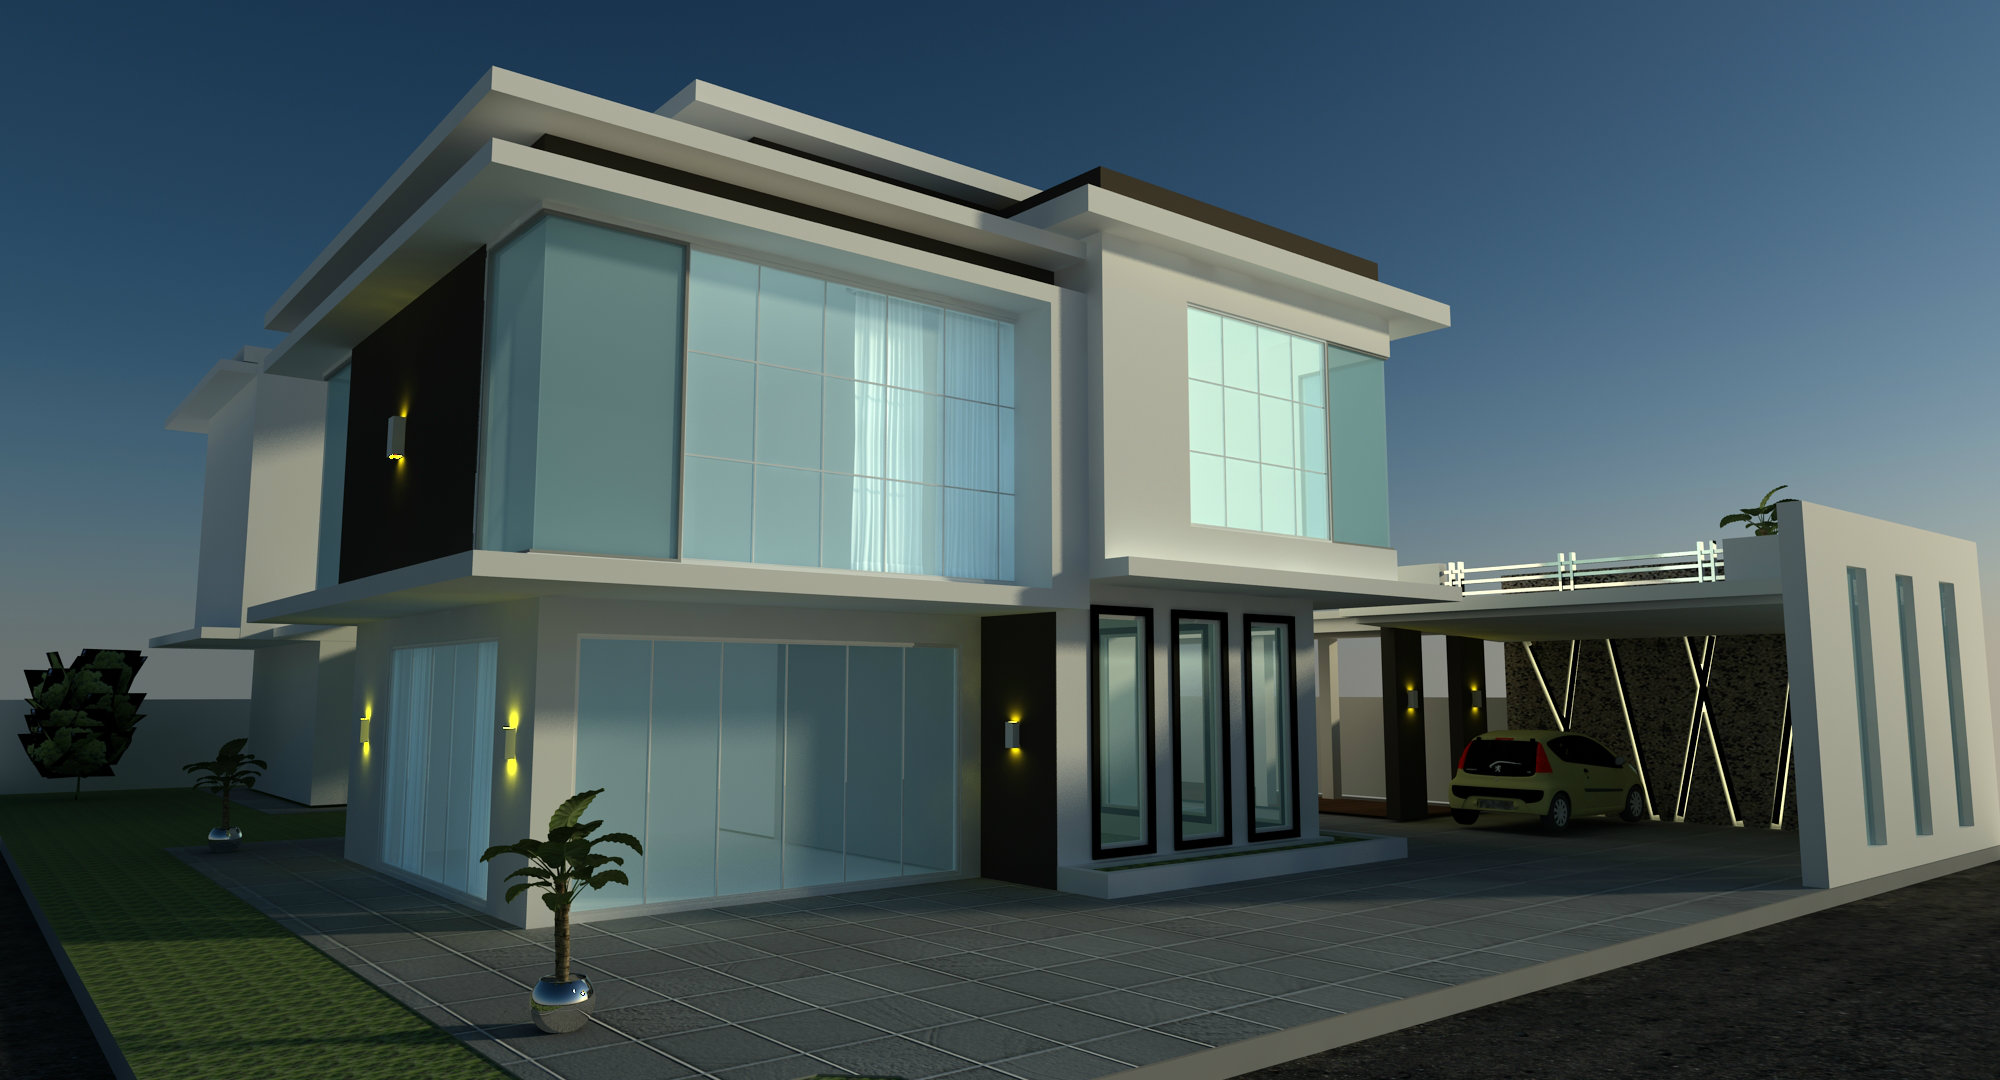 Design For Bungalow House Project Jb Interior Design Renovation Construction Johor Bahru